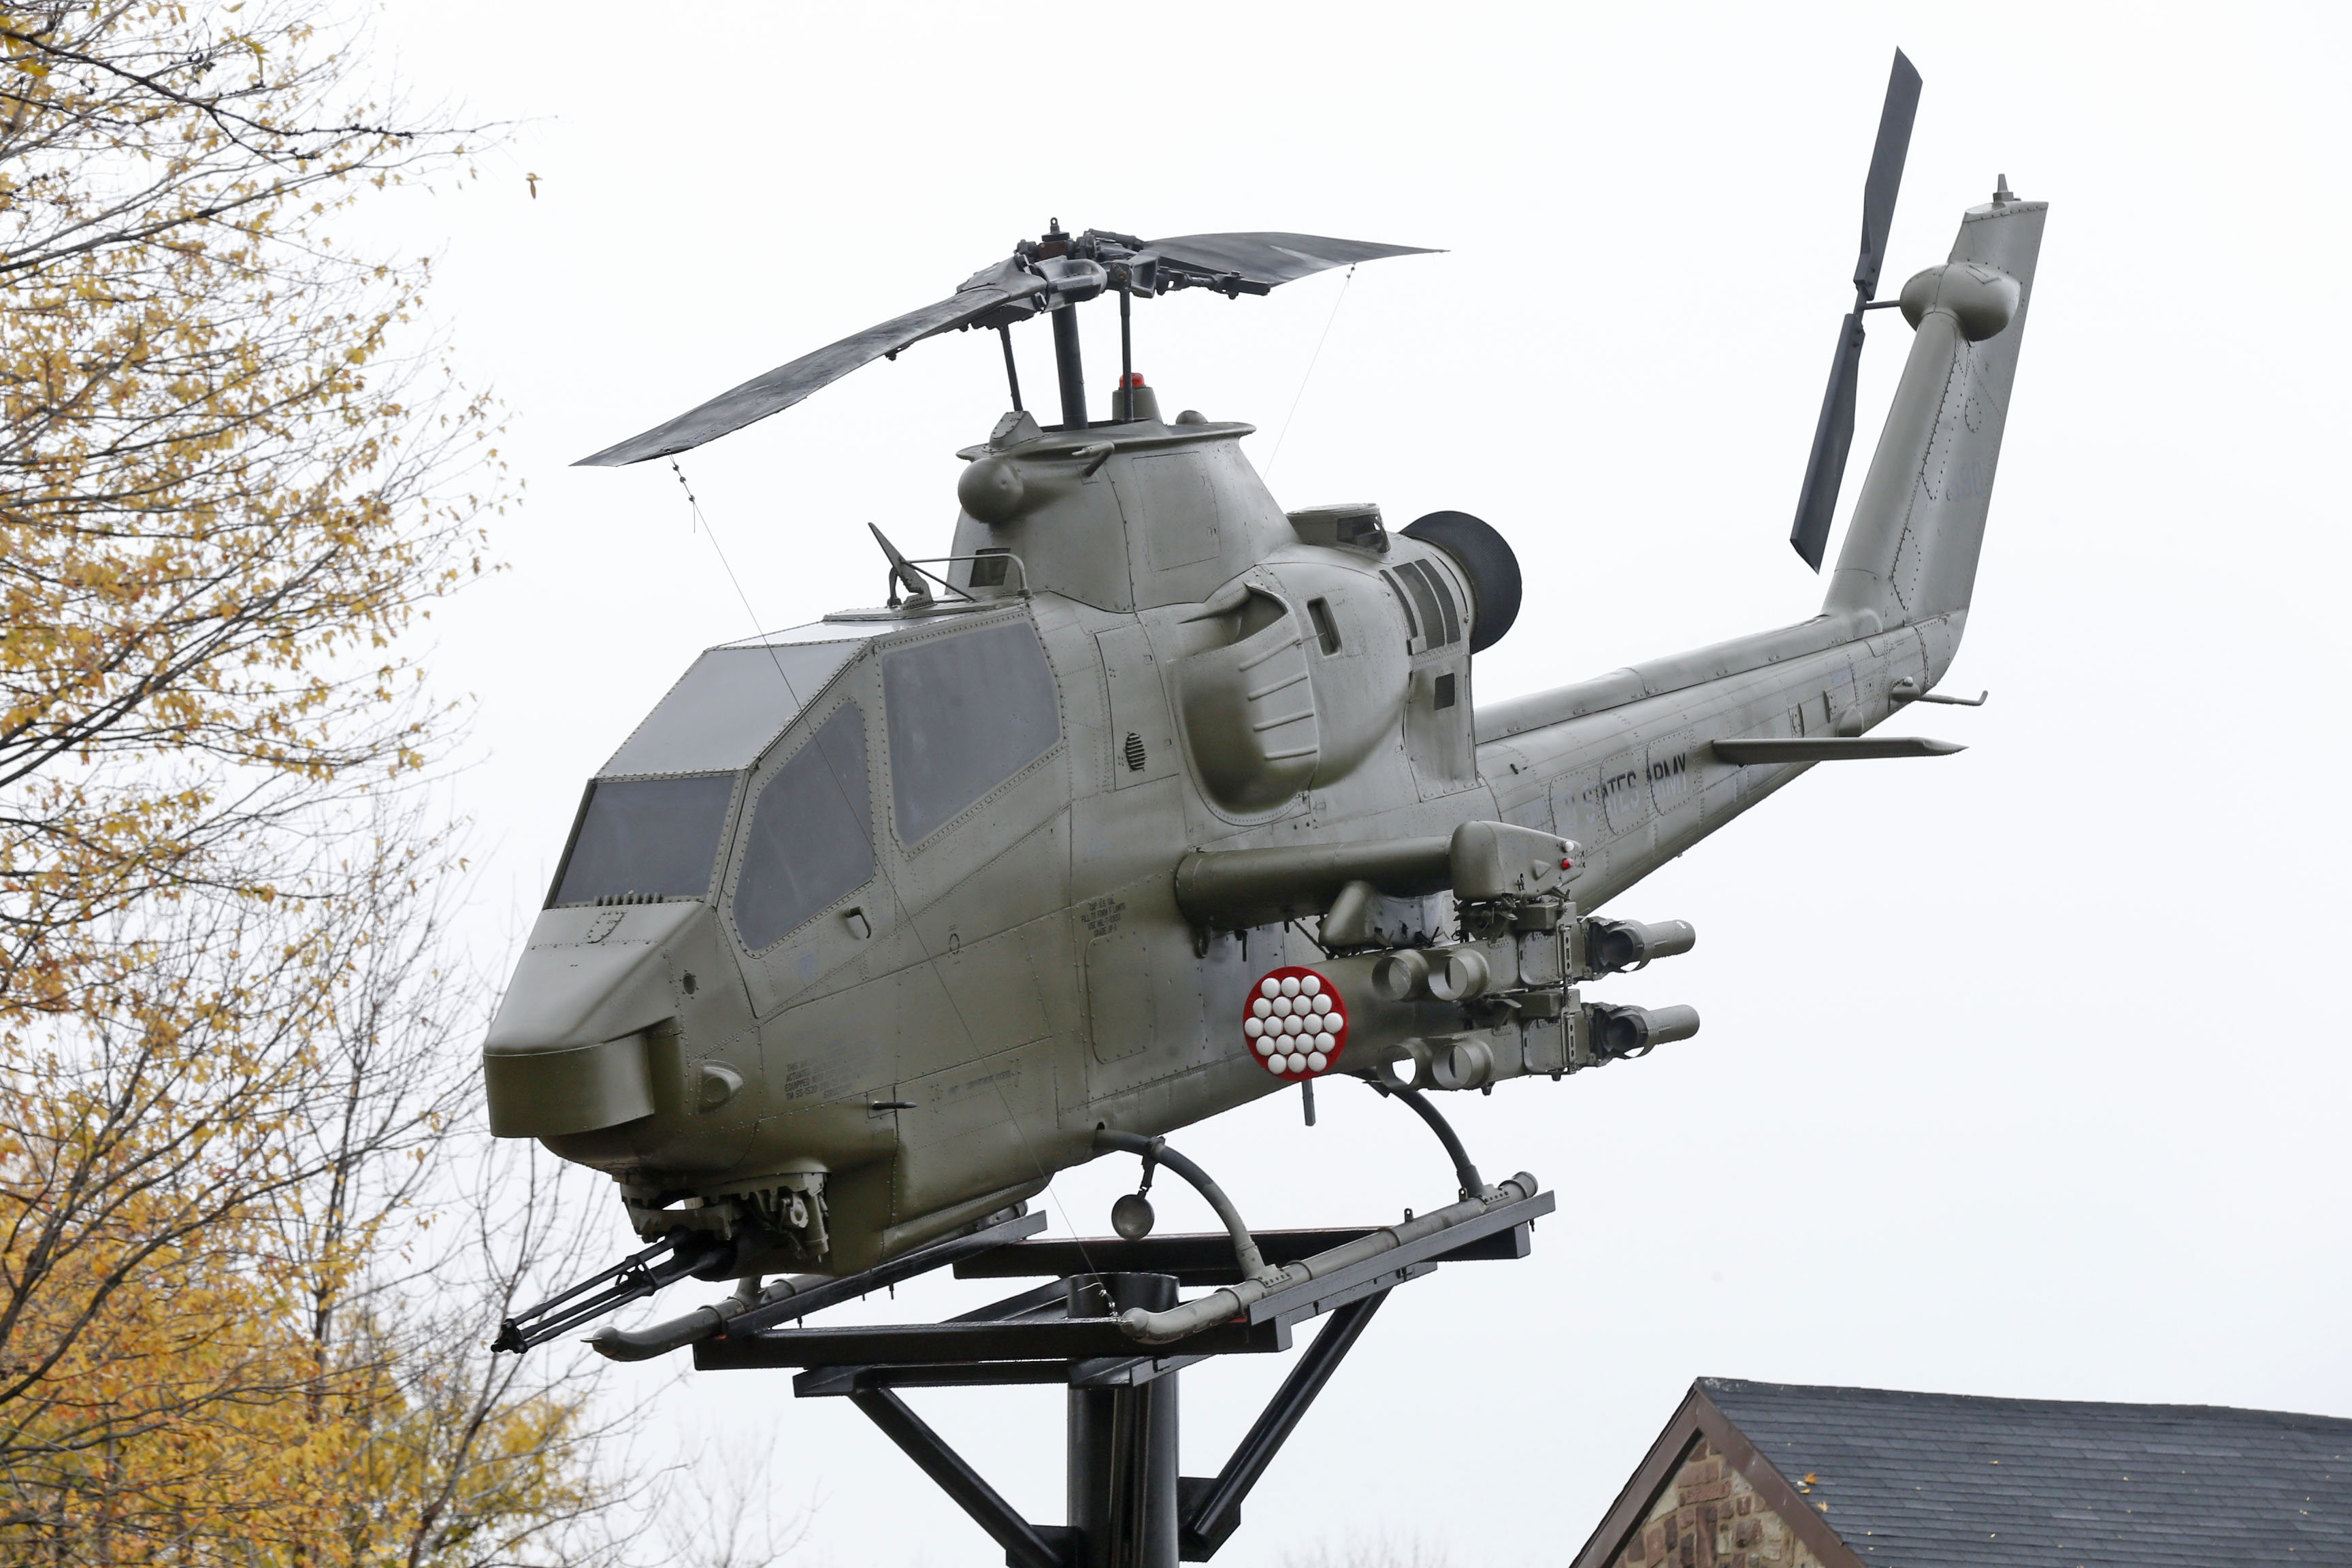 The Cobra attack helicopter was placed in late October on a pedestal in Veterans Park in the City of Tonawanda. Photo by Robert Kirkham / Buffalo News